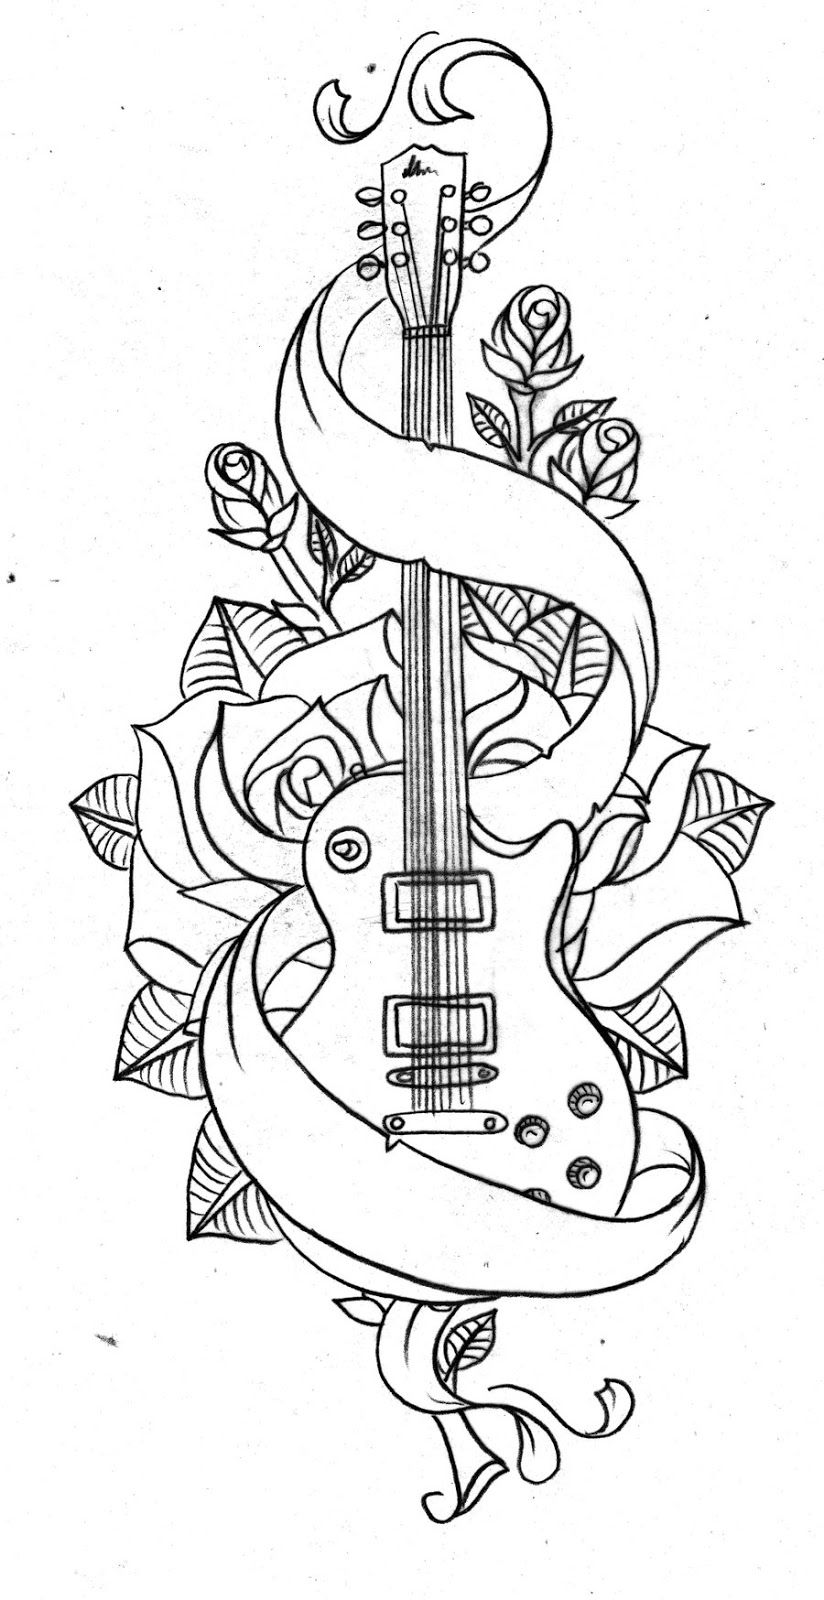 Music tattoo design, guitar tattoos Coloring pages